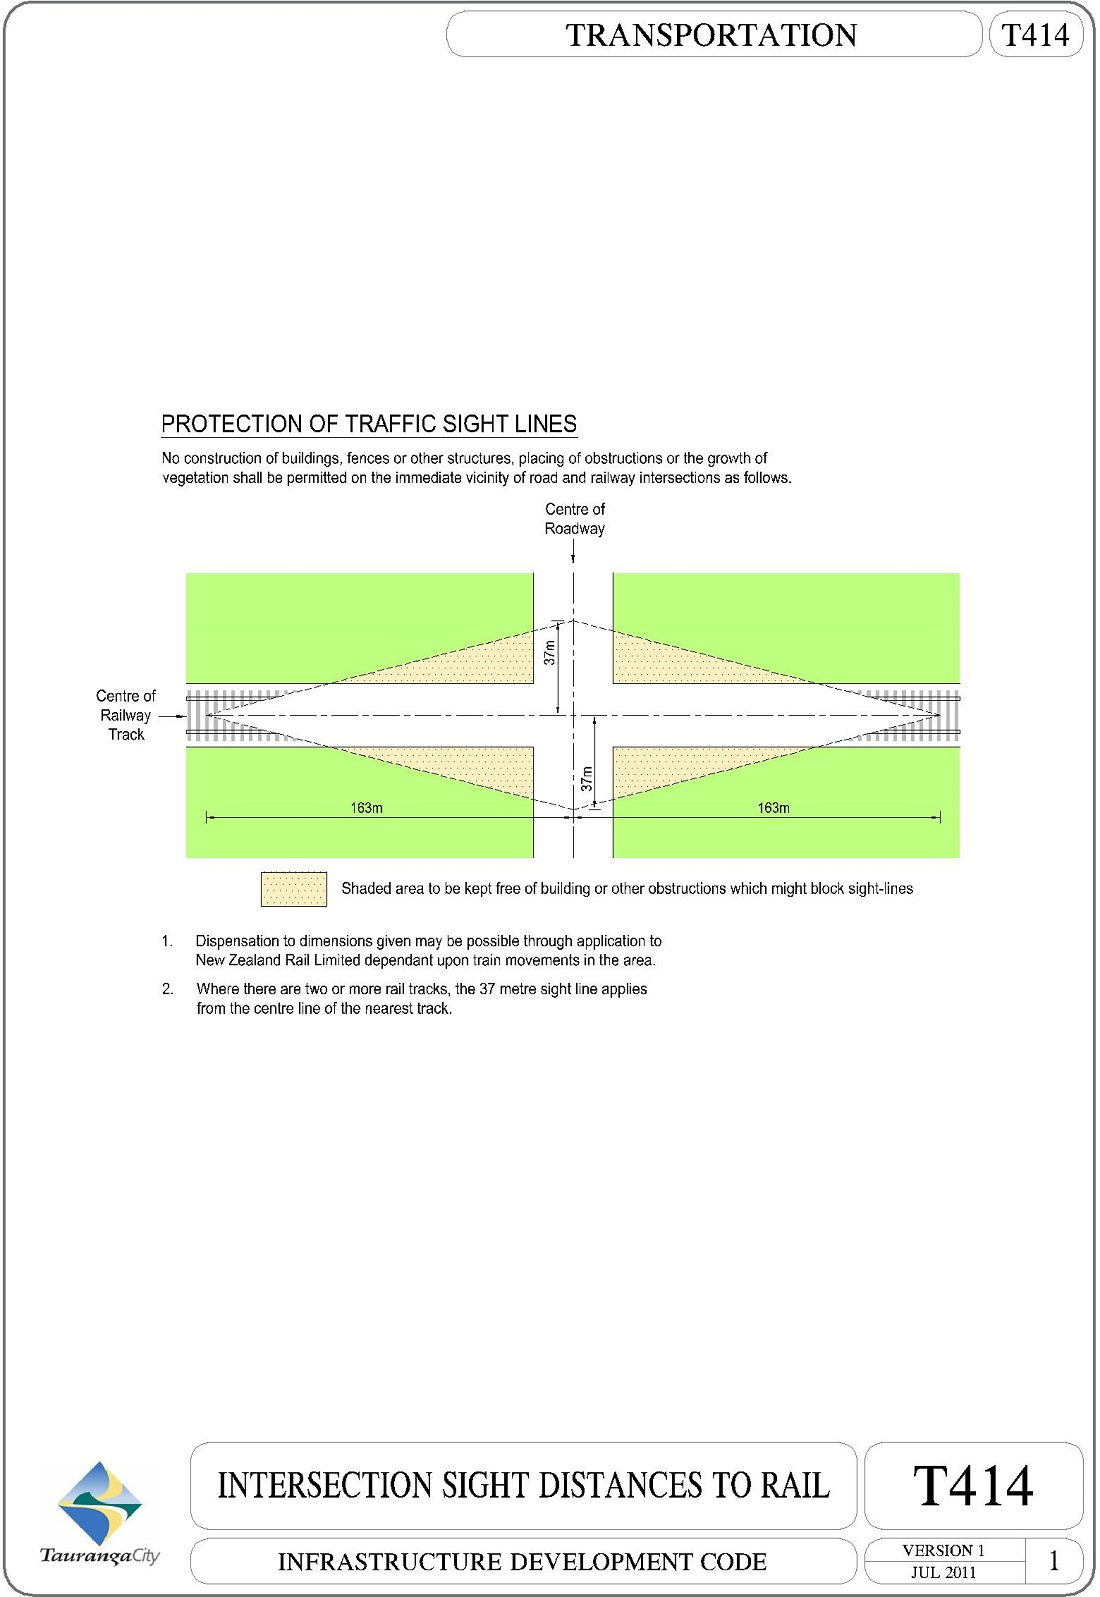 Intersection Sight Distances